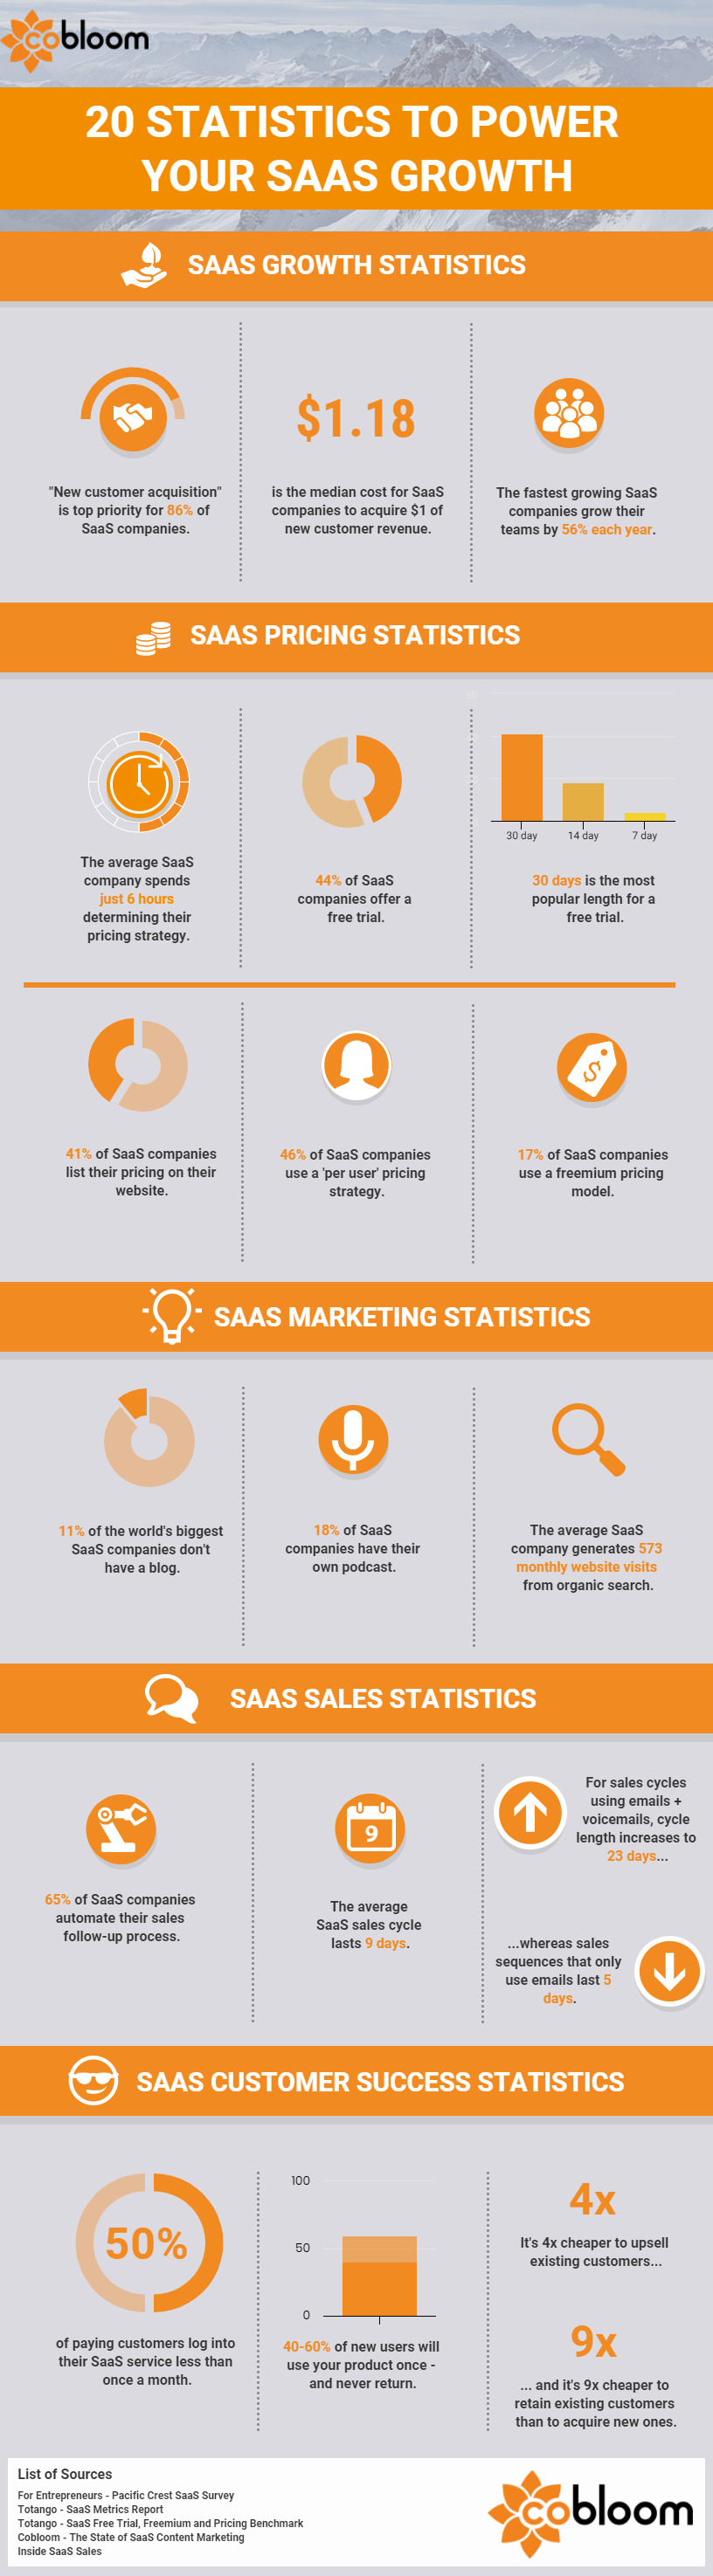 20 Statistics to Power Your SaaS Growth.png